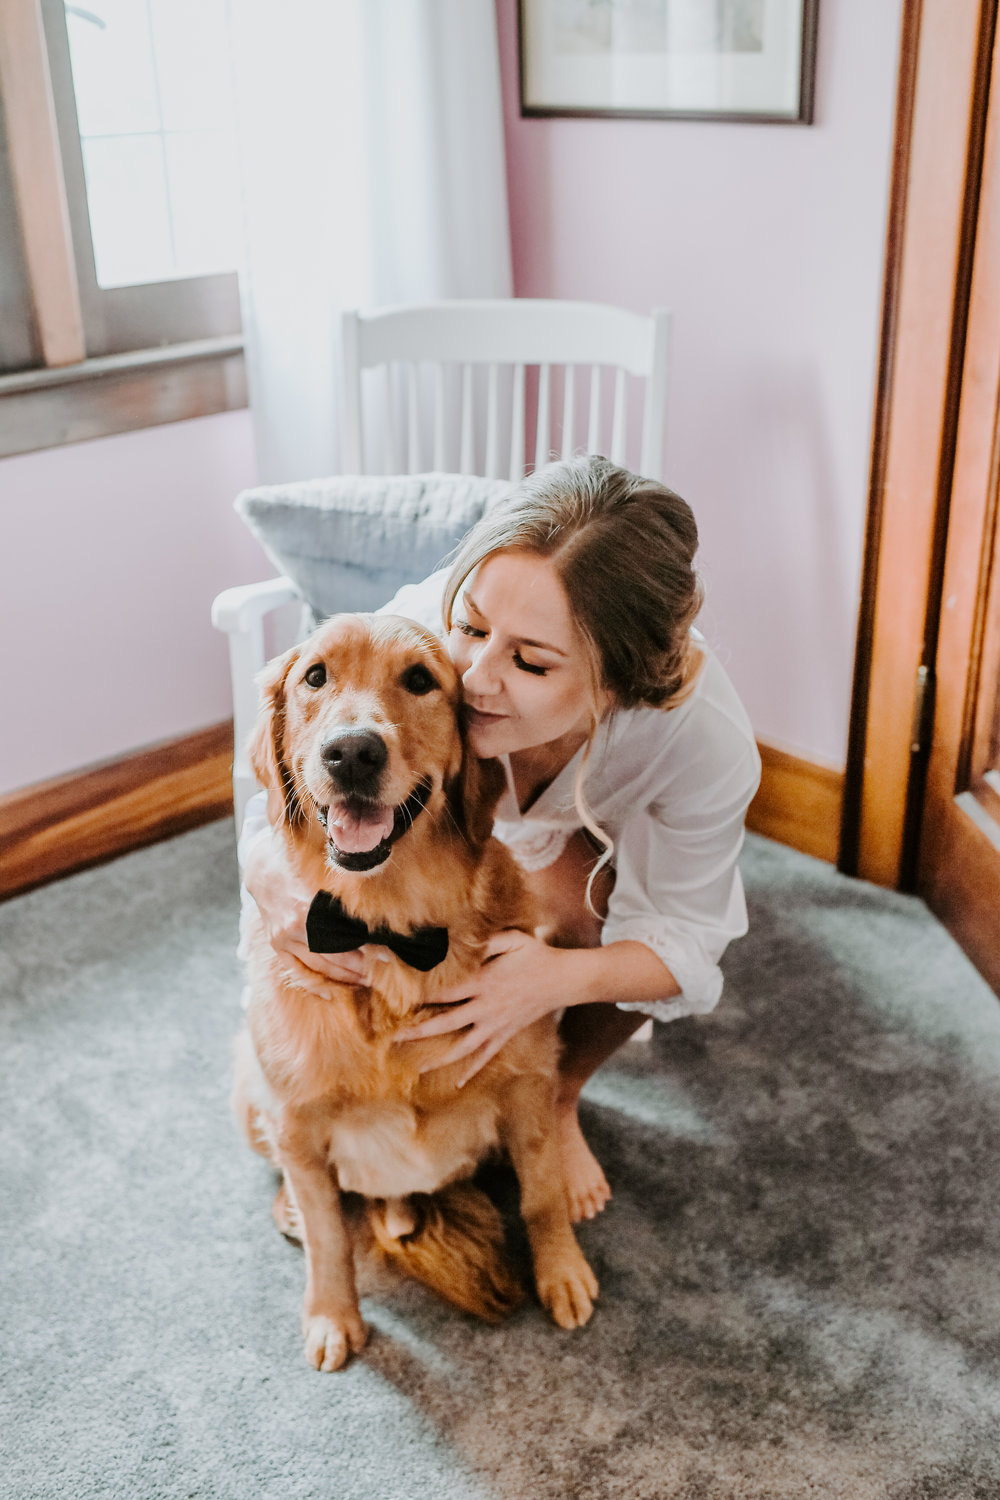 Dog at wedding with bride for Buffalo, NY wedding planned by Exhale Events. Find more wedding inspiration at exhale-events.com!